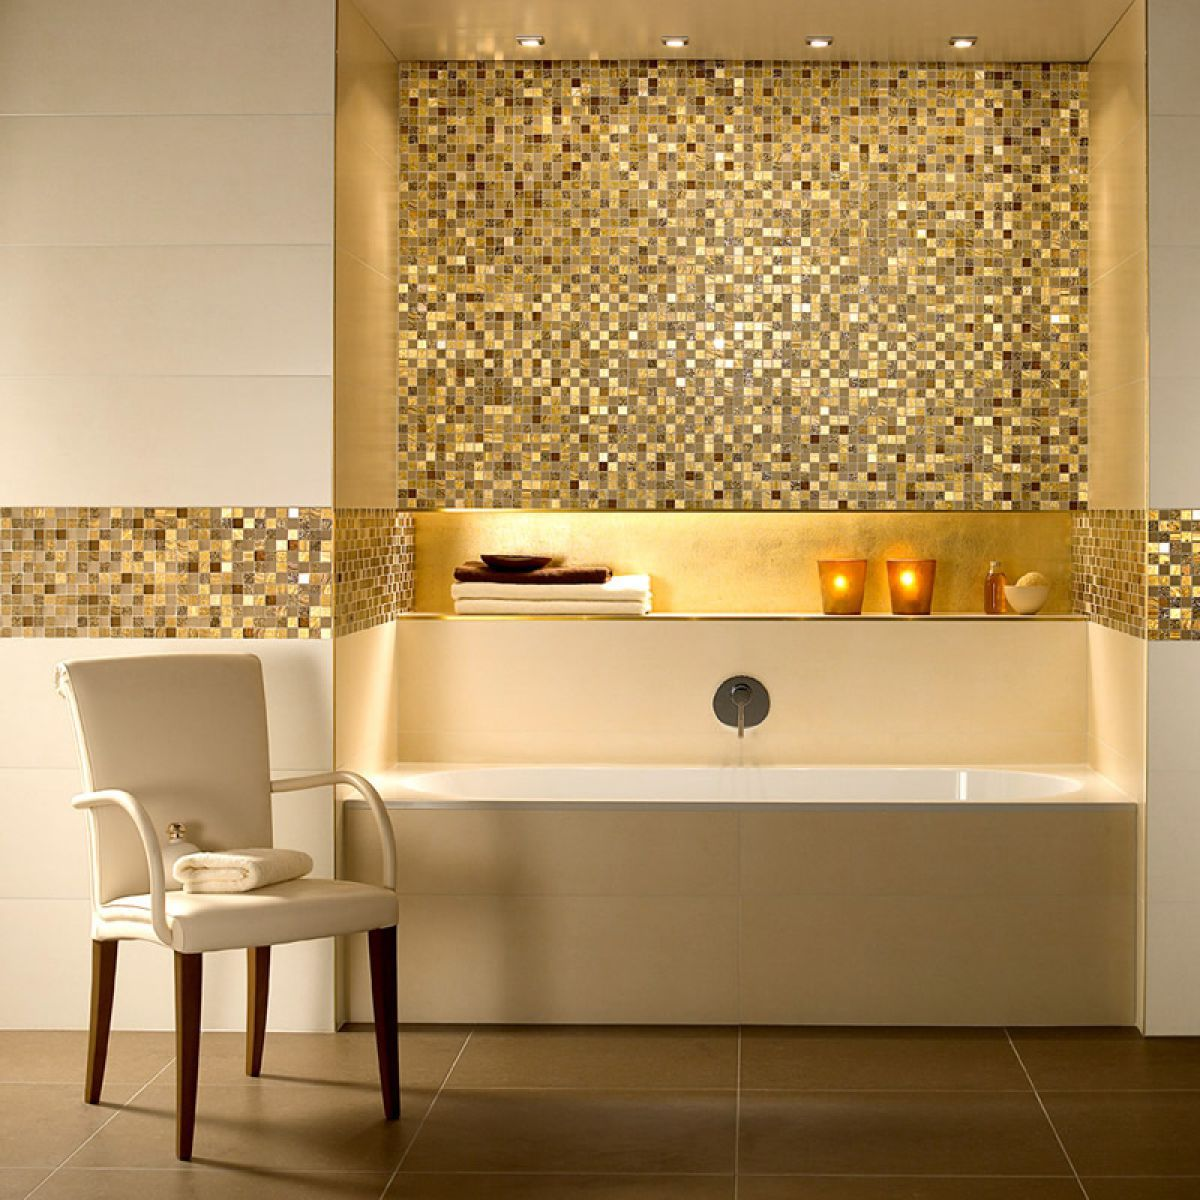 10 Best Golden Aesthetics for Your Bathroom Design | Bathroom ...